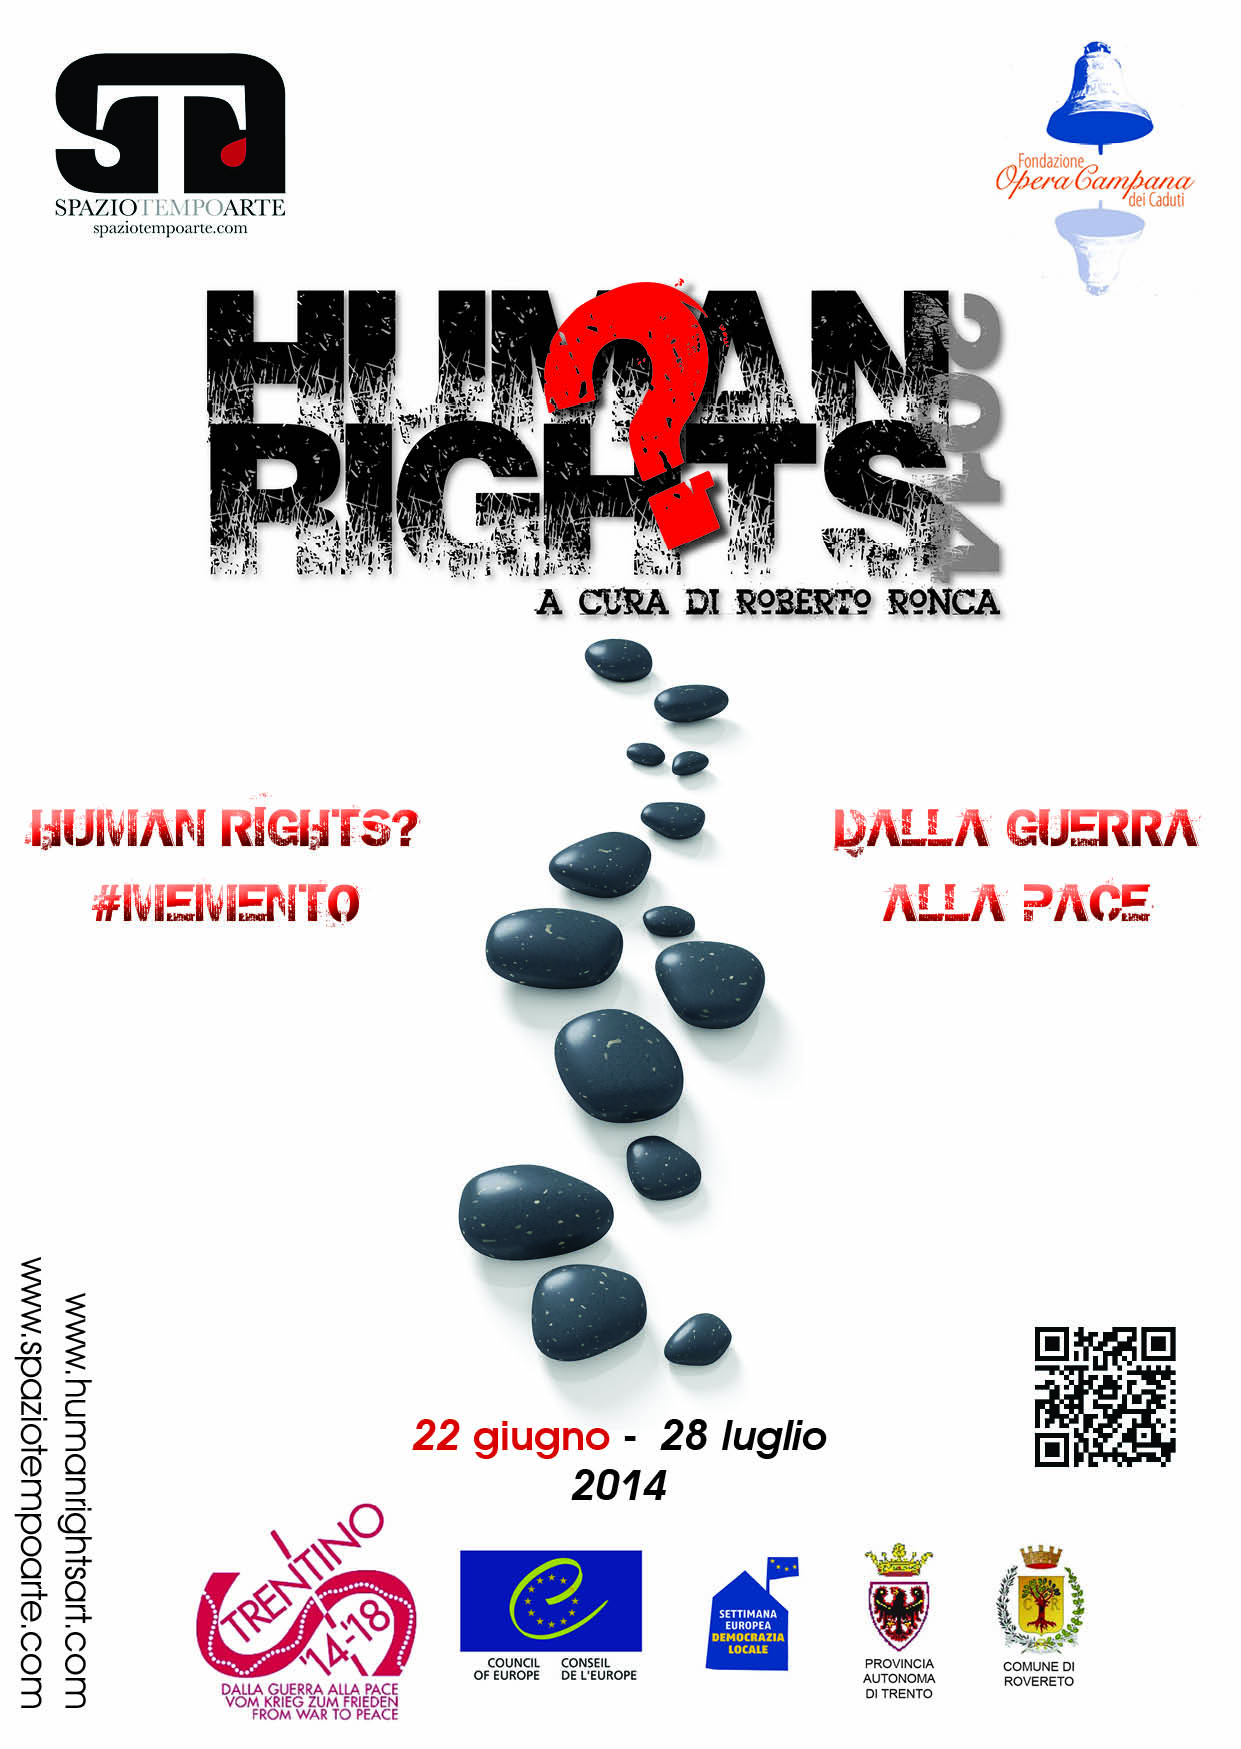 HUMAN RIGHTS? #MEMENTO